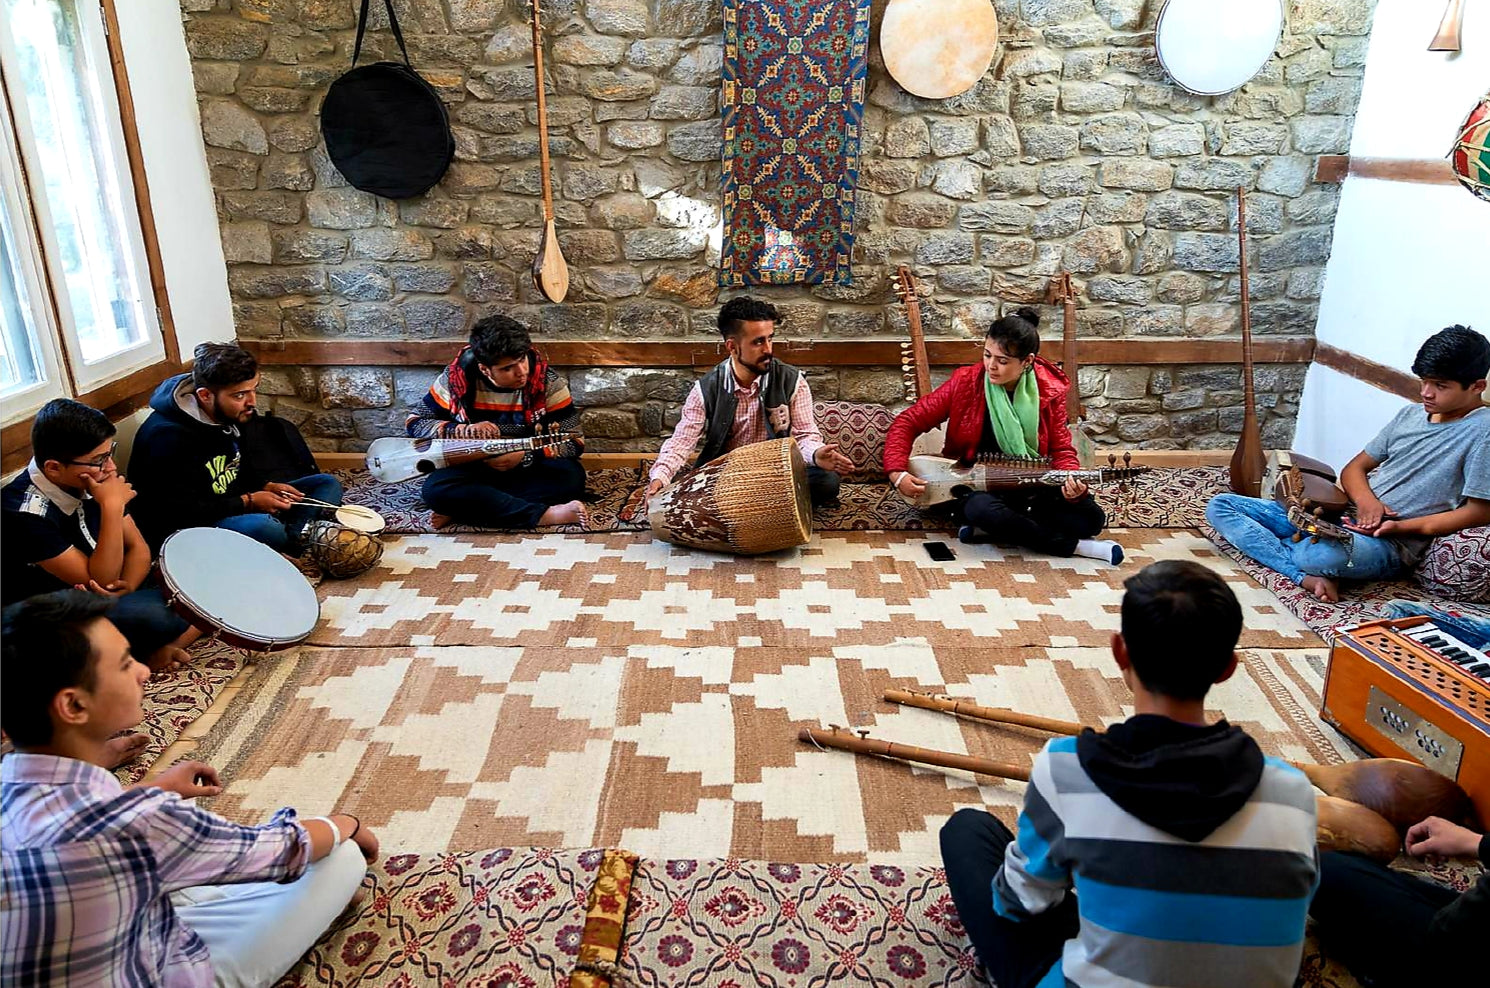 Australian Cricket Tours - Music Lessons With Hunza People In The Hunza Valley, Pakistan